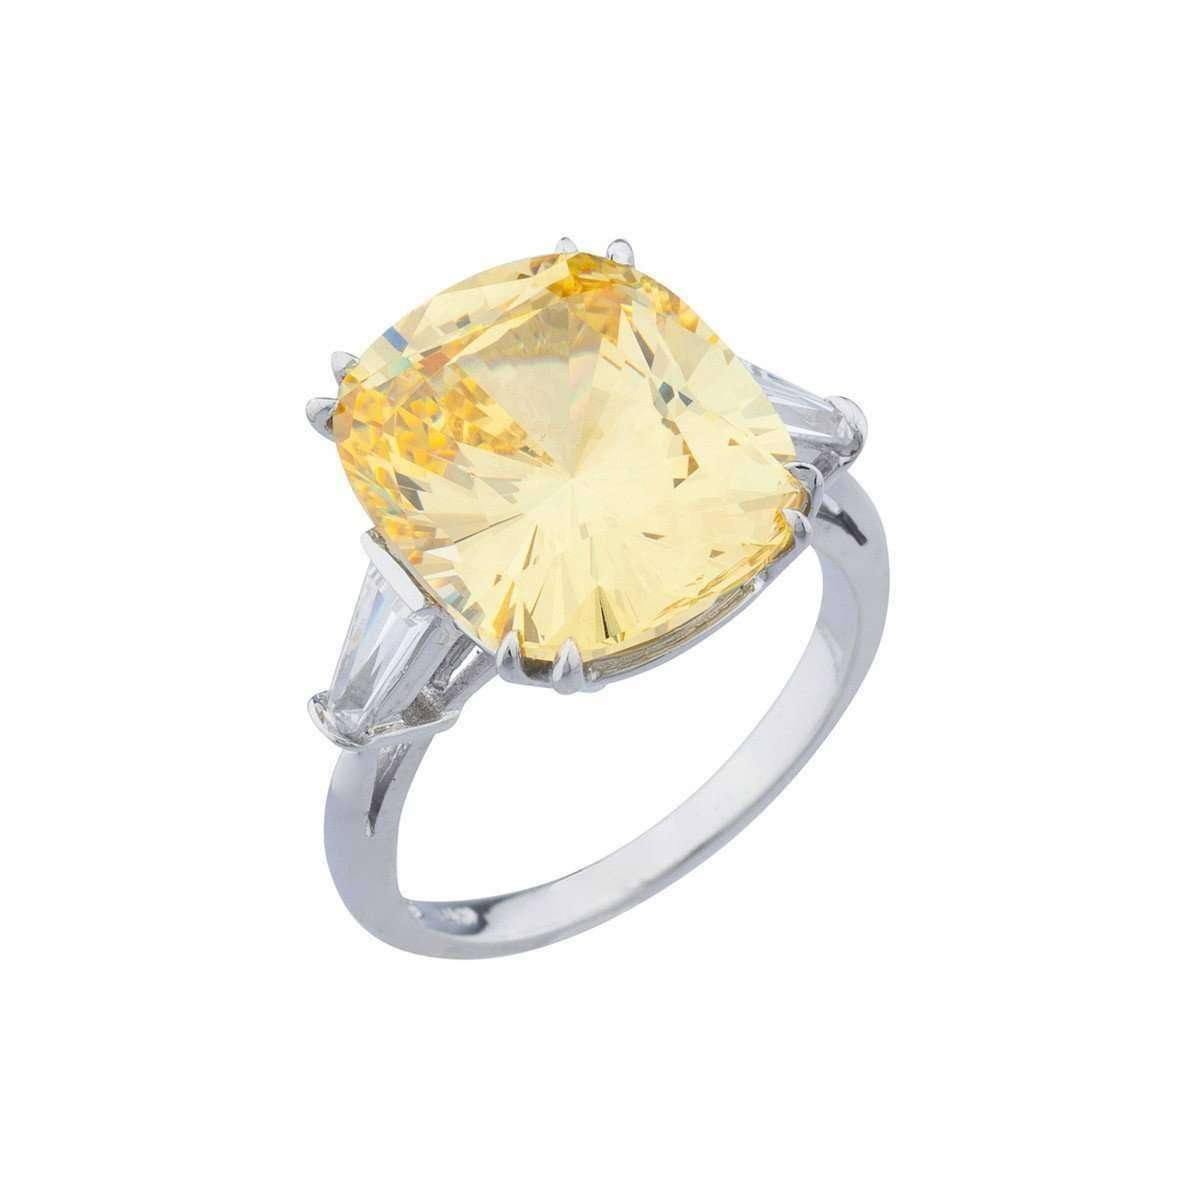 14kt White Gold 11.5ct Canary Cushion Cut Ring - FANTASIA BY DESERIO